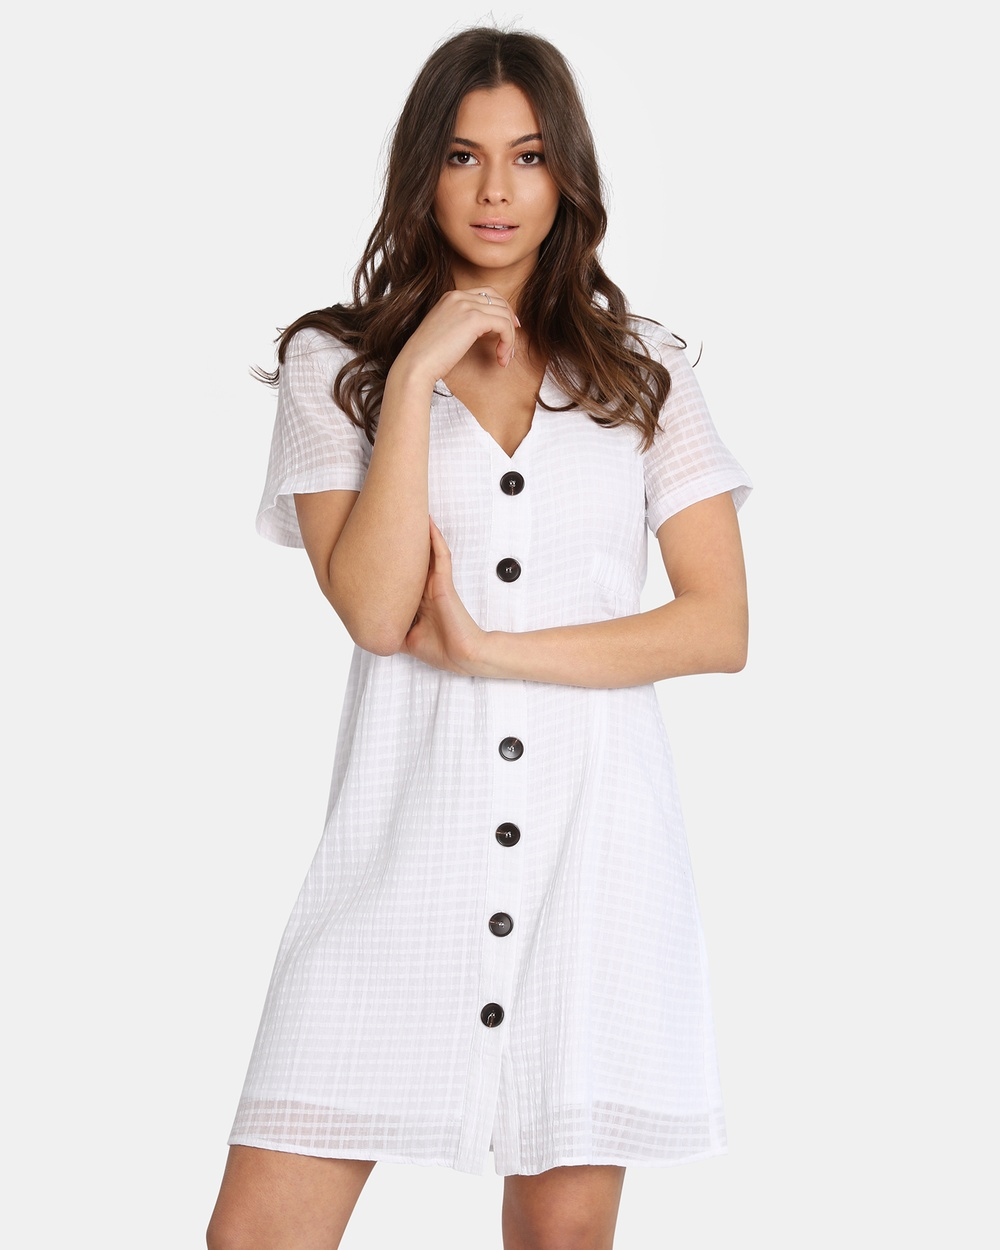 Madison Square Nelly Dress Dresses White Nelly Dress